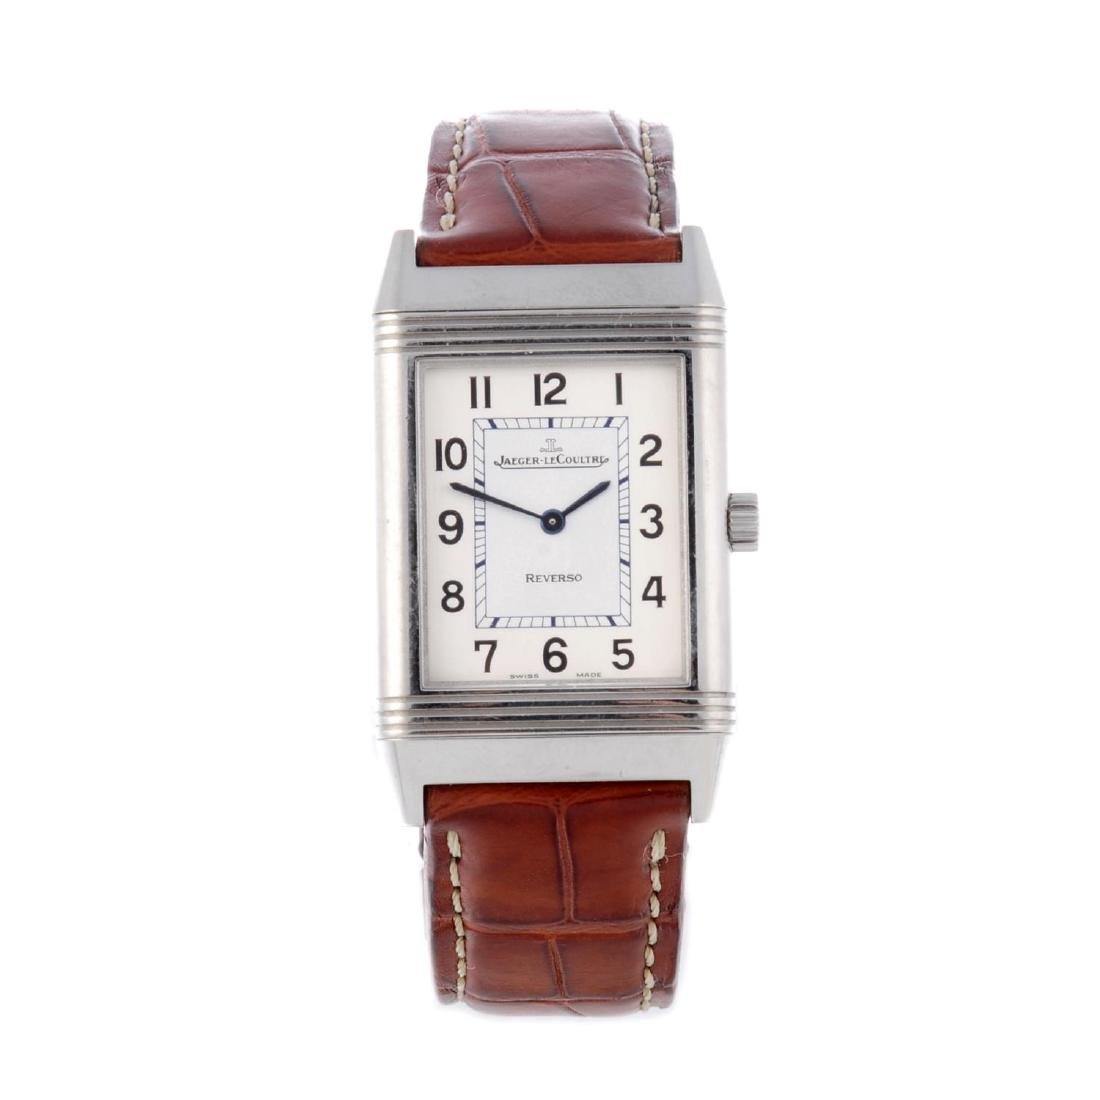 JAEGER-LECOULTRE - a mid-size Reverso wrist watch.